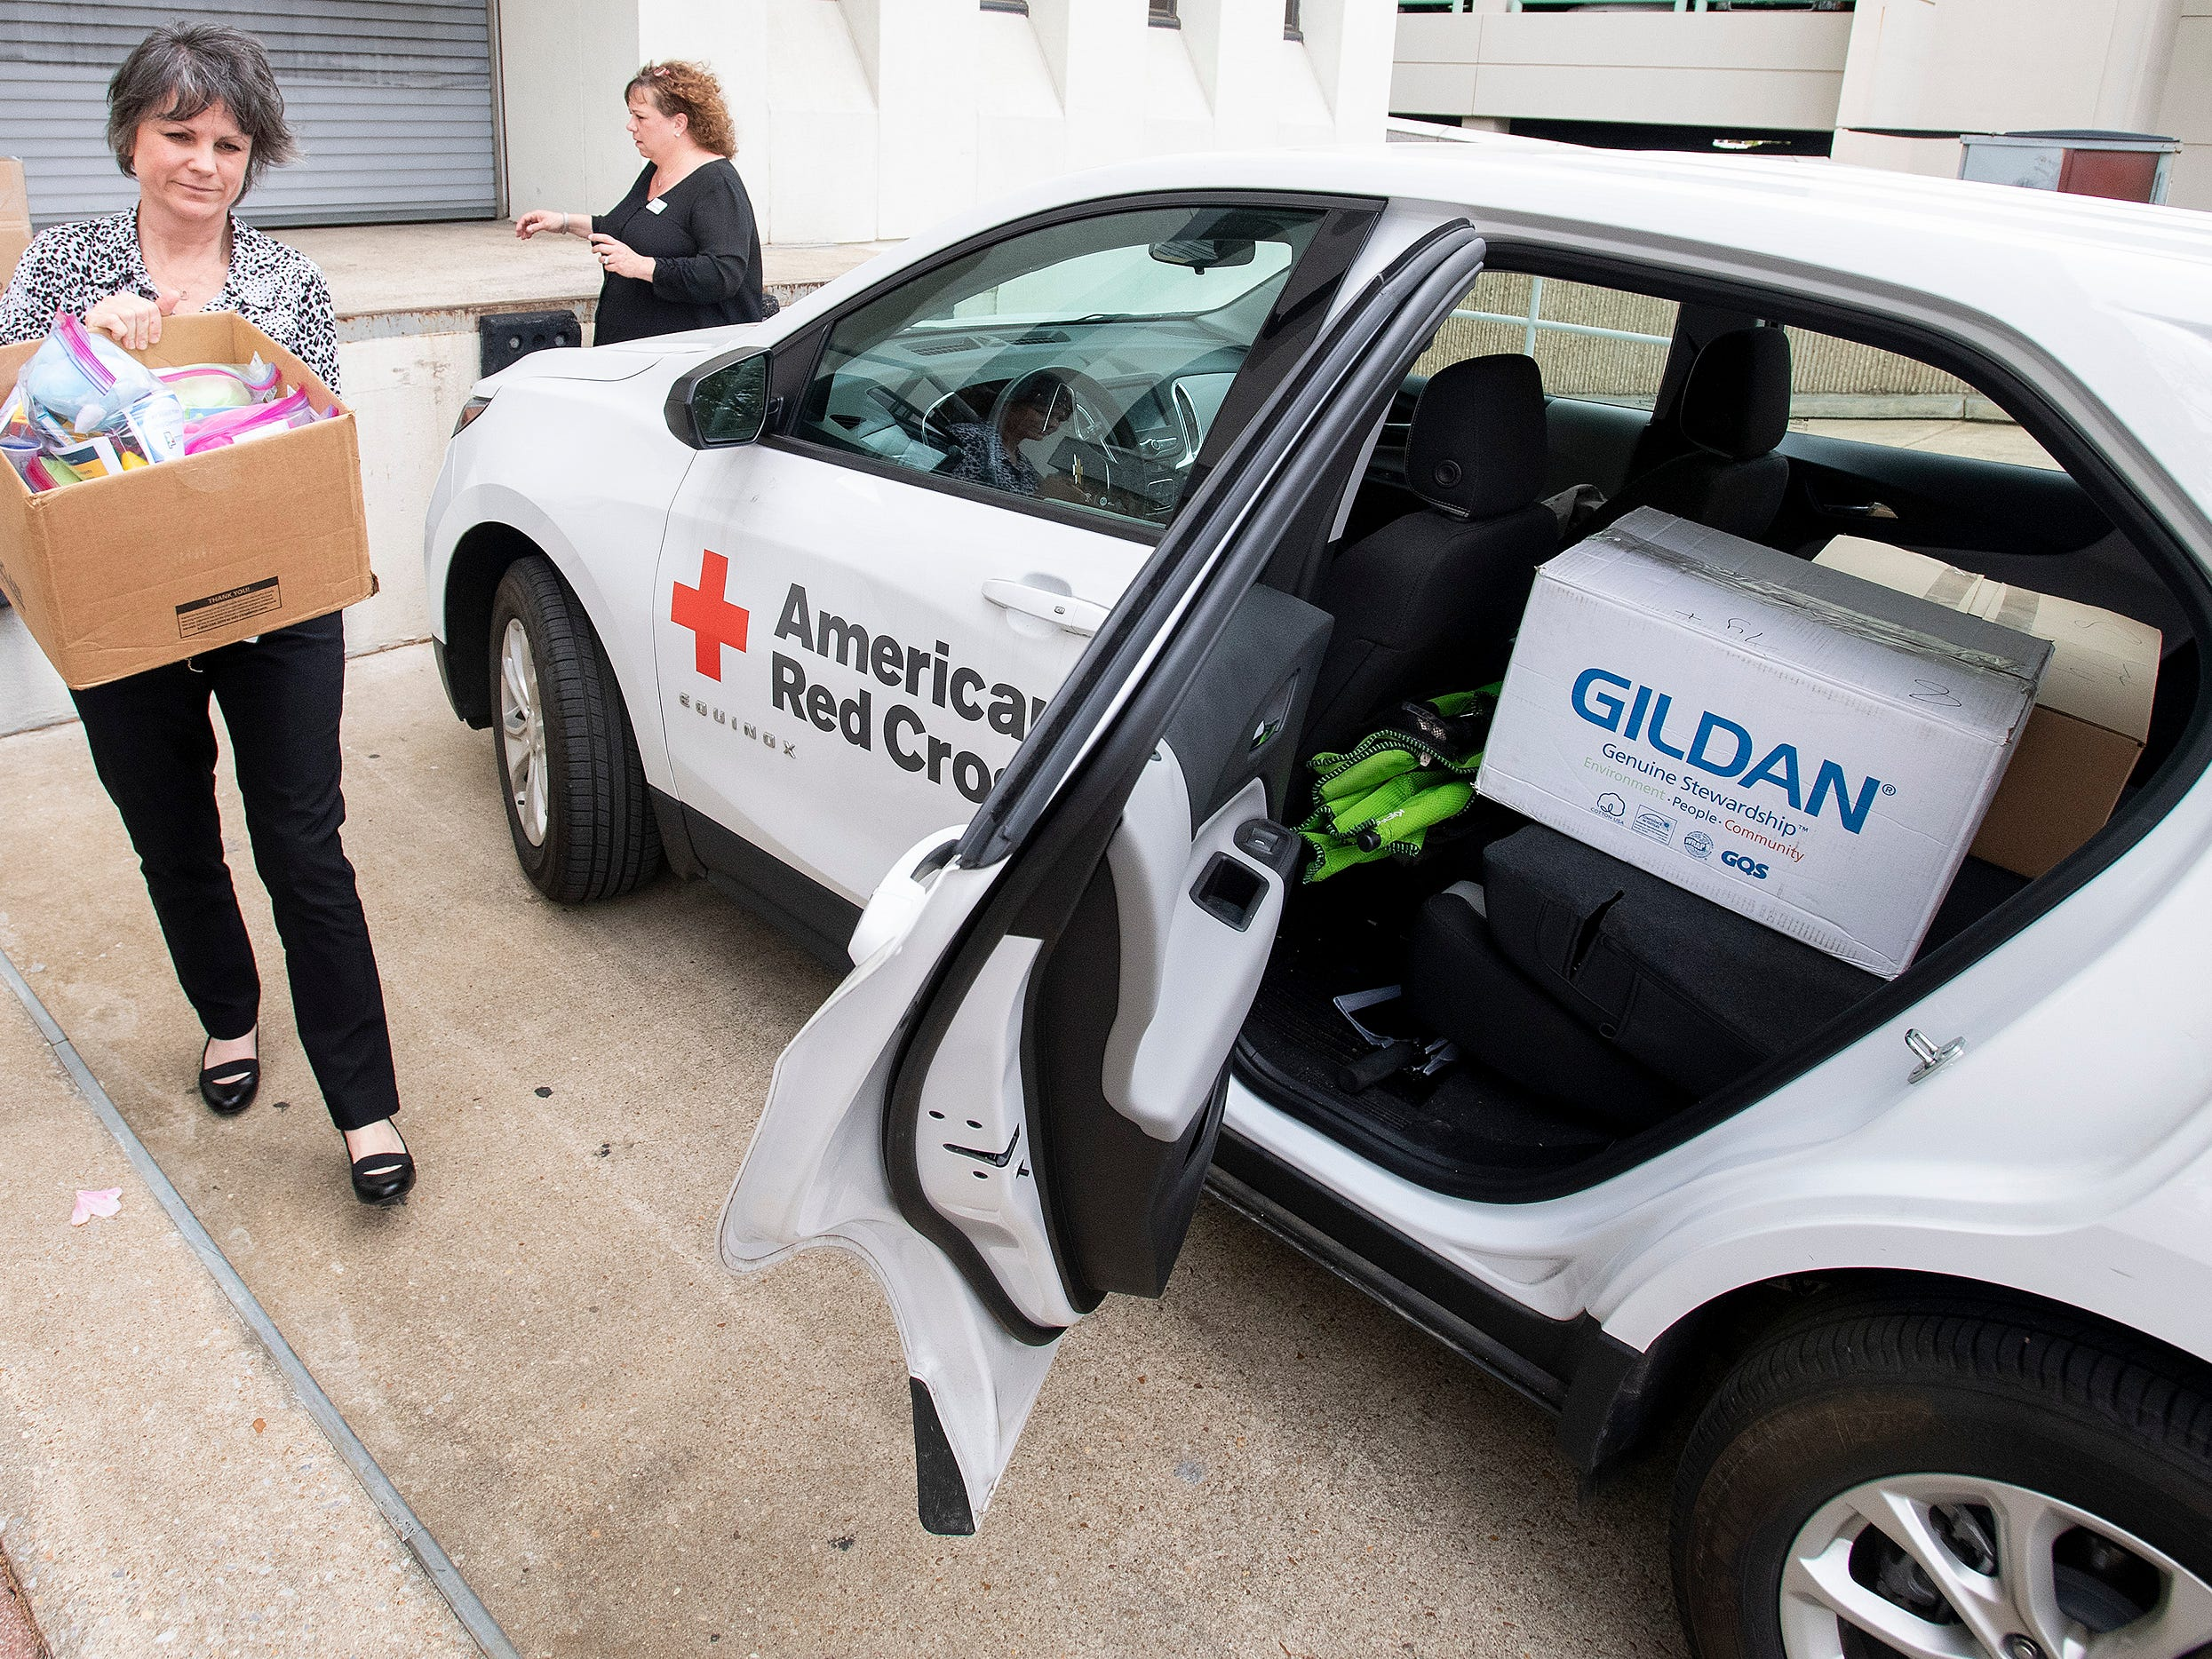 Dallas Rabig, of the Department of Early Childhood Education, left, gives child comfort kits to Kelly Hodges, of the Red Cross, on Wednesday March 13, 2019 in Montgomery, Ala., to be distributed to children in the wake of the Lee County tornados.